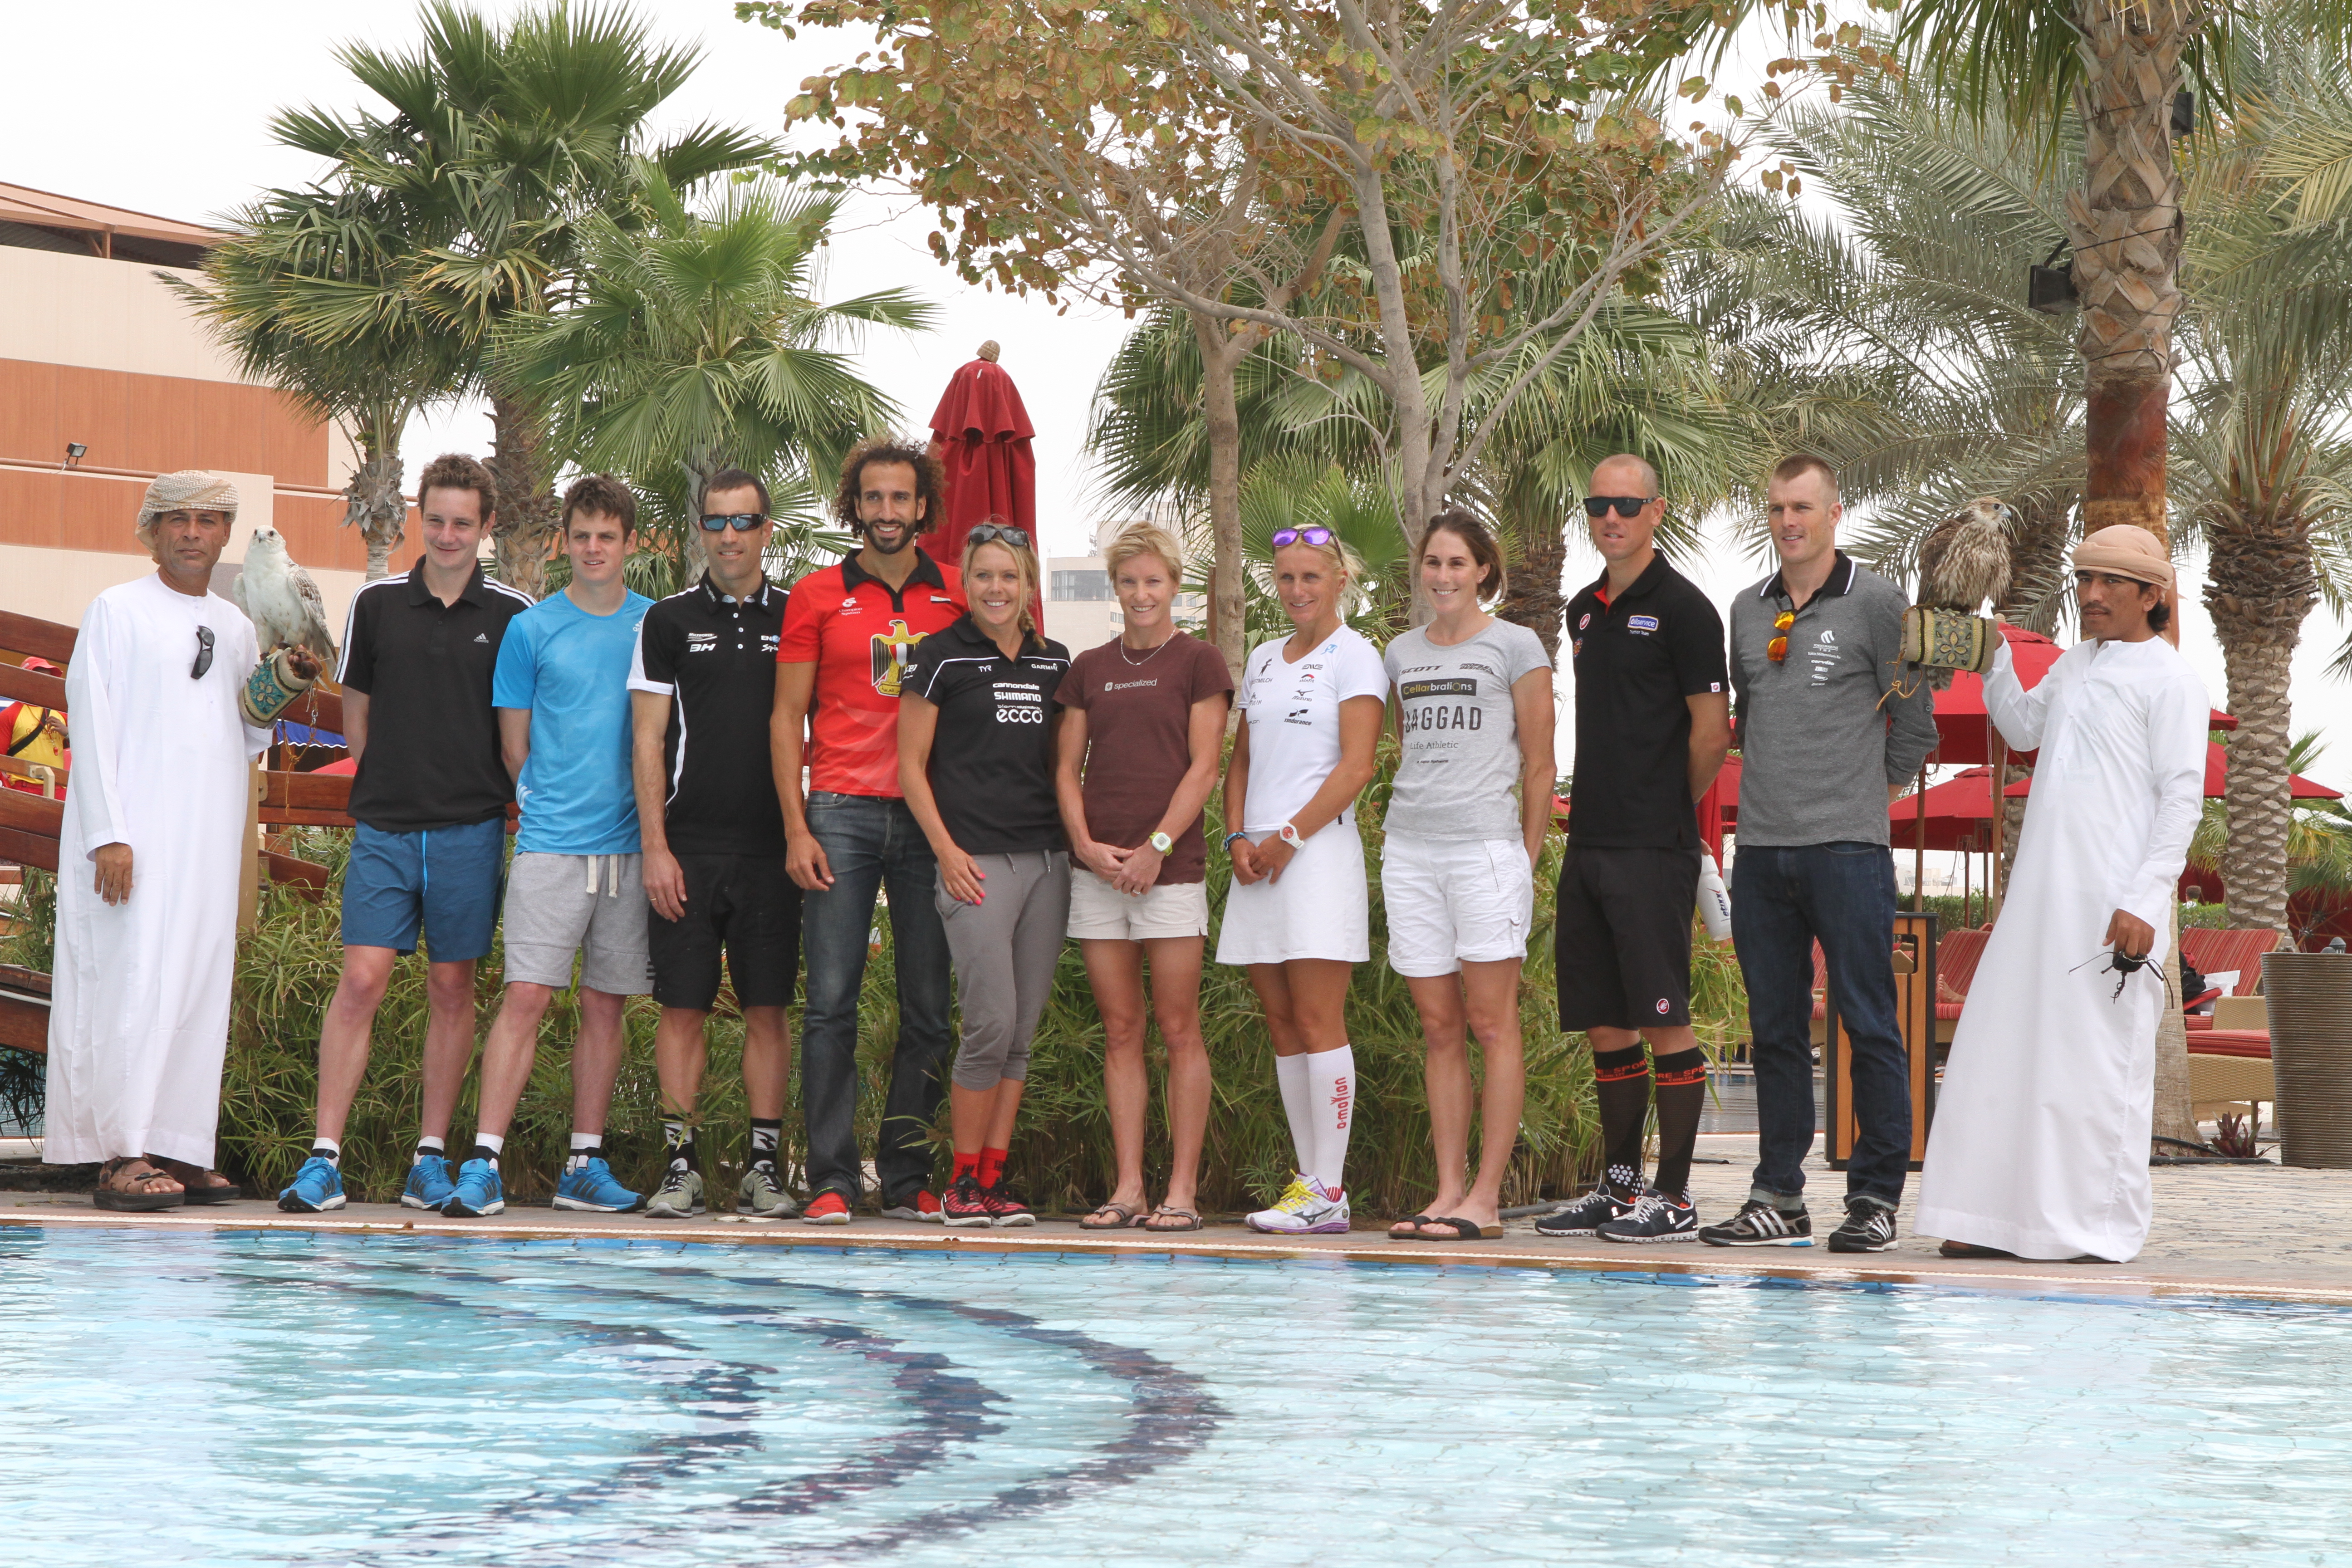 Suivez le LIVE du Triathlon International d'Abu Dhabi